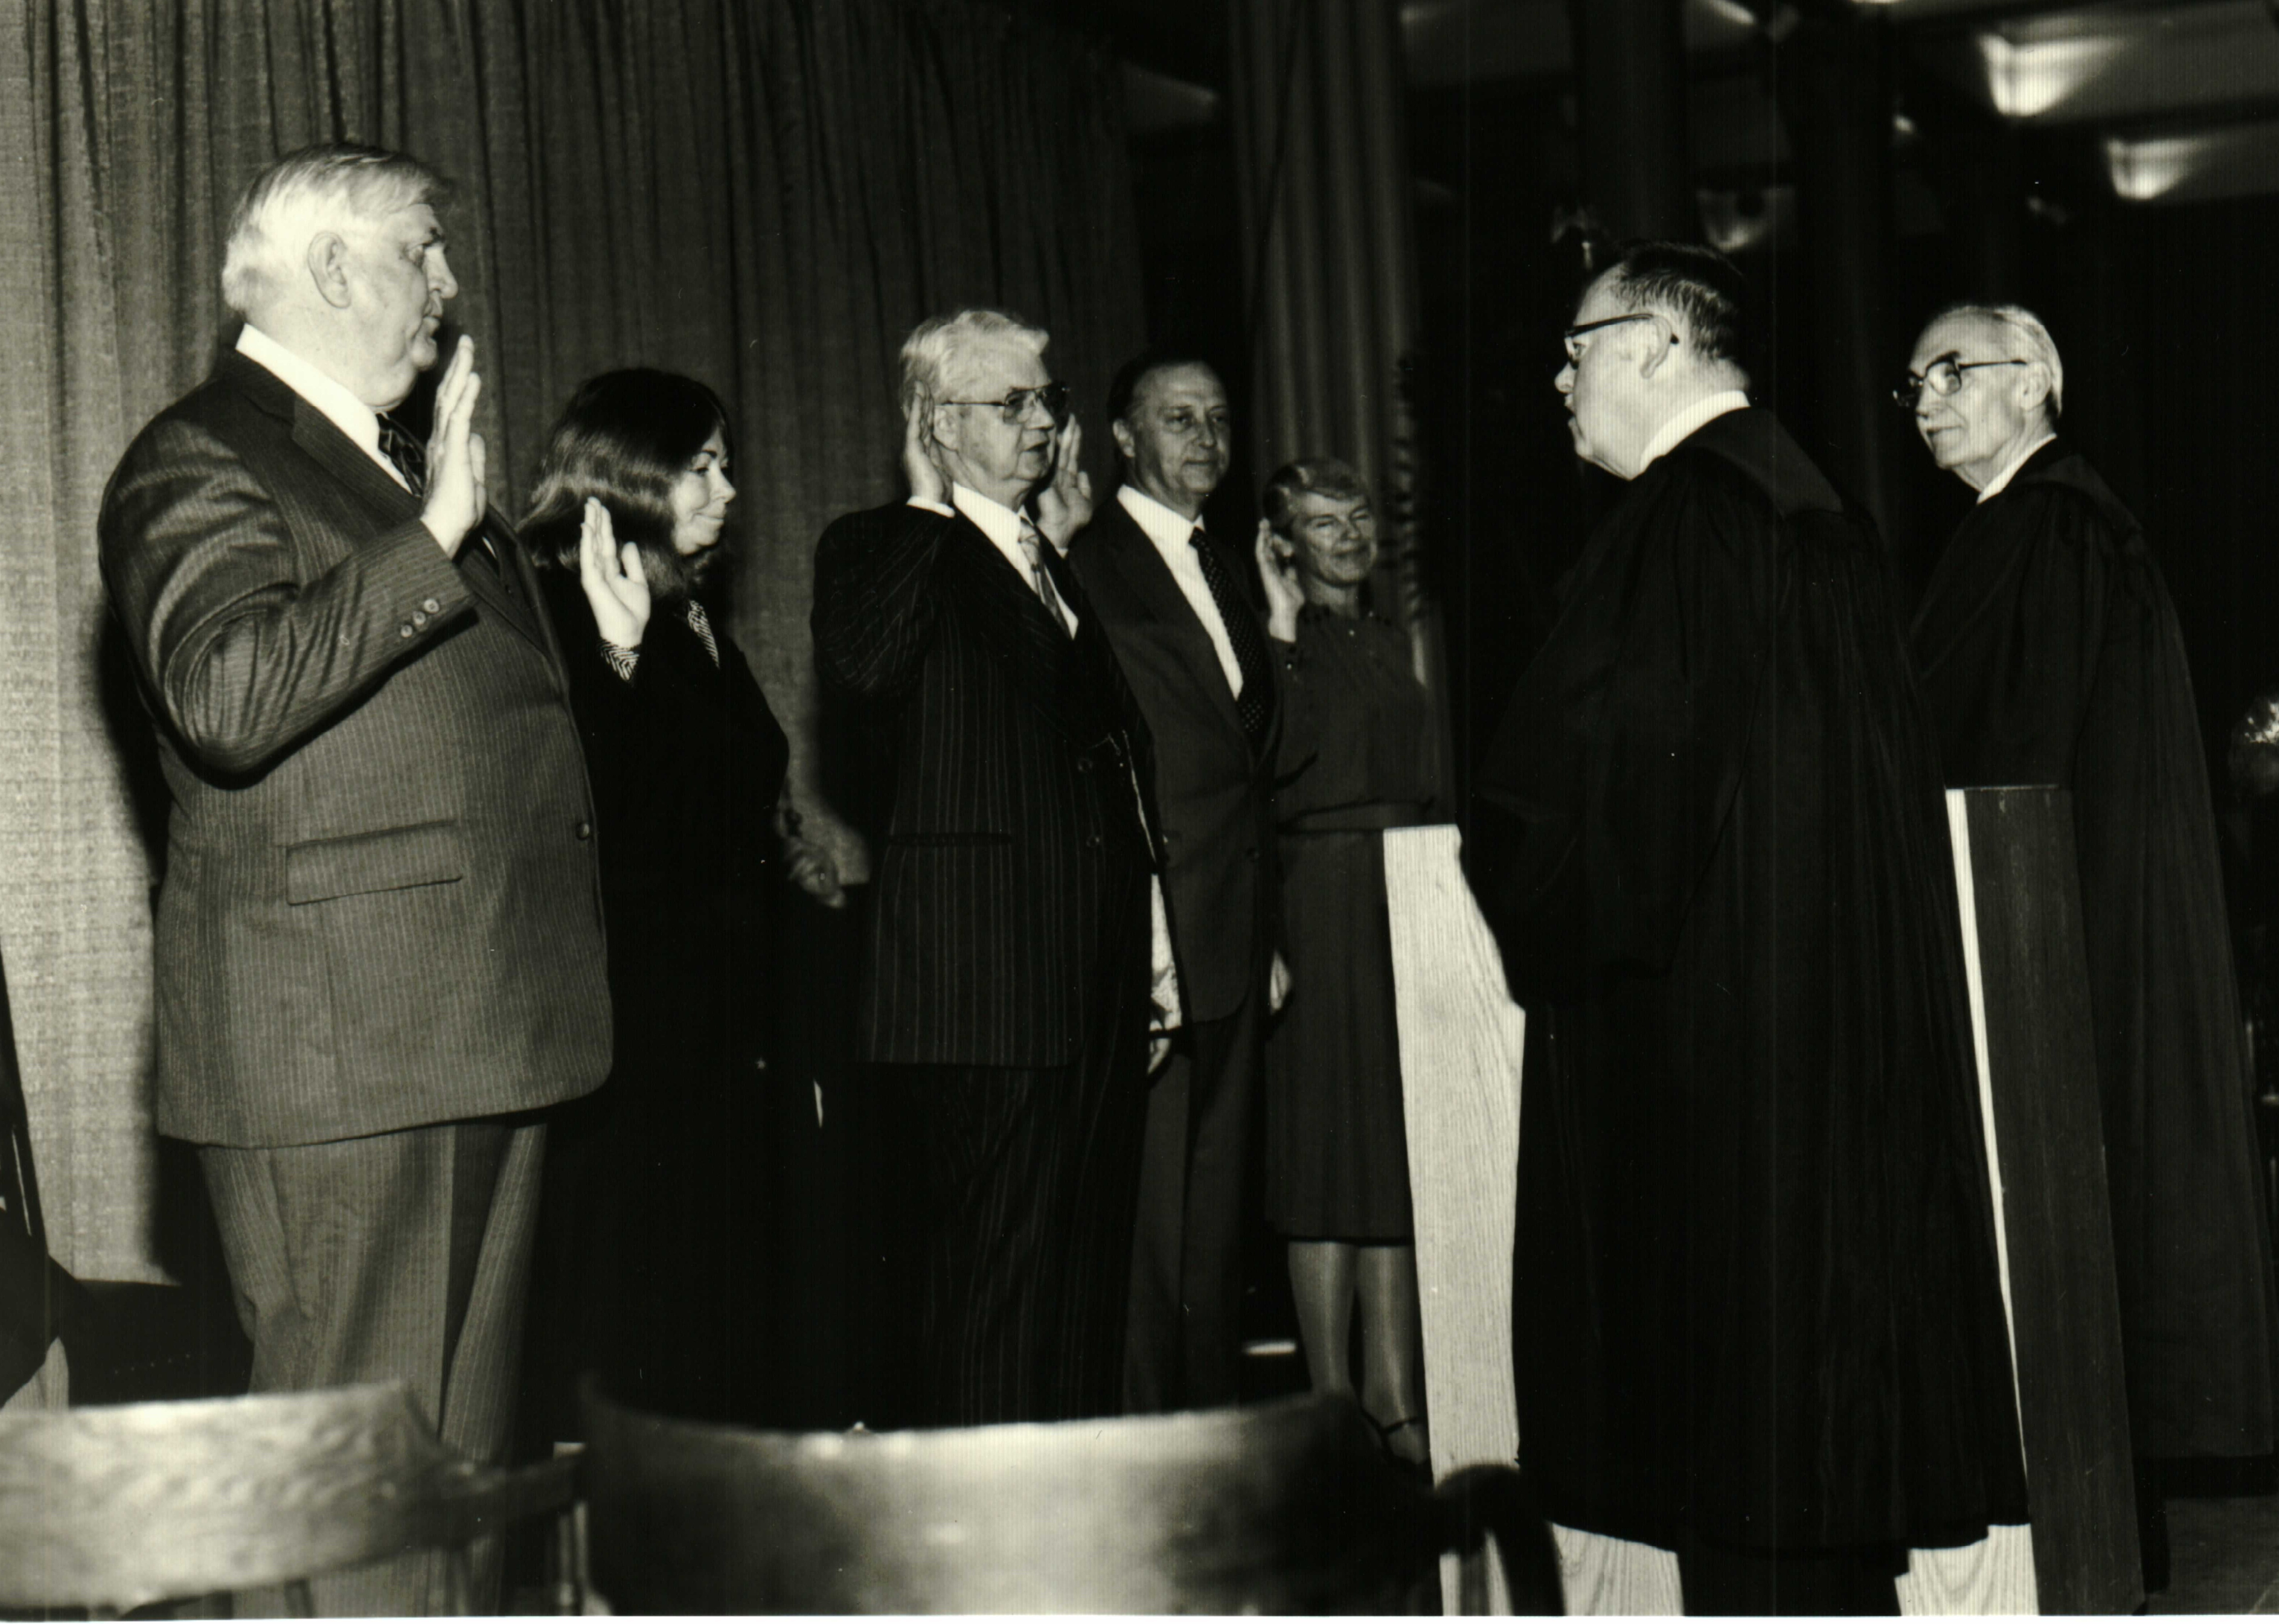 Court of Appeals Swearing In Ceremony 1983